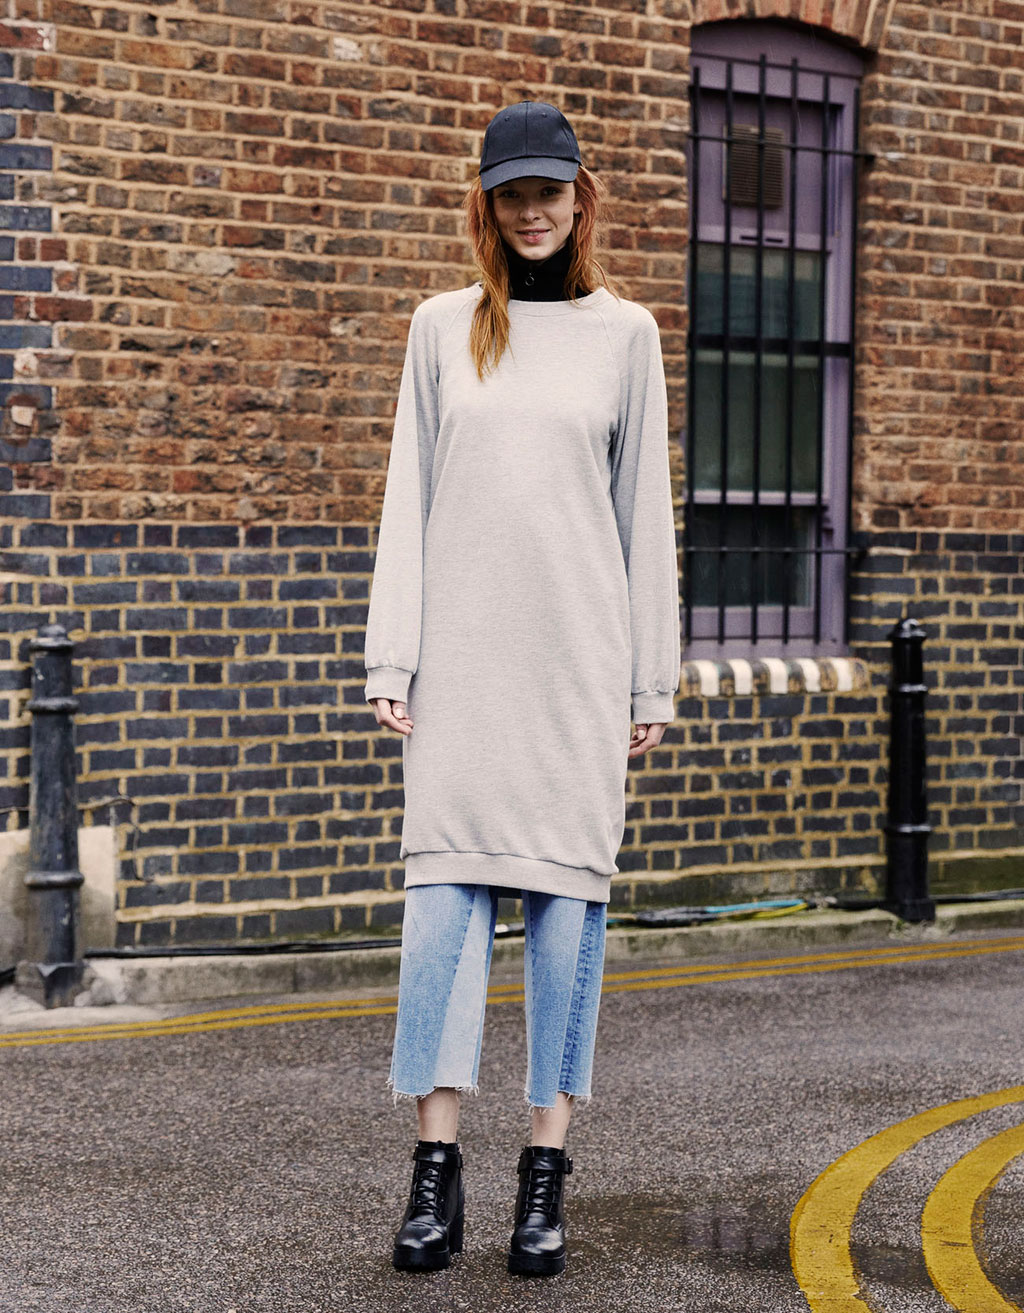 Long oversize sweatshirt